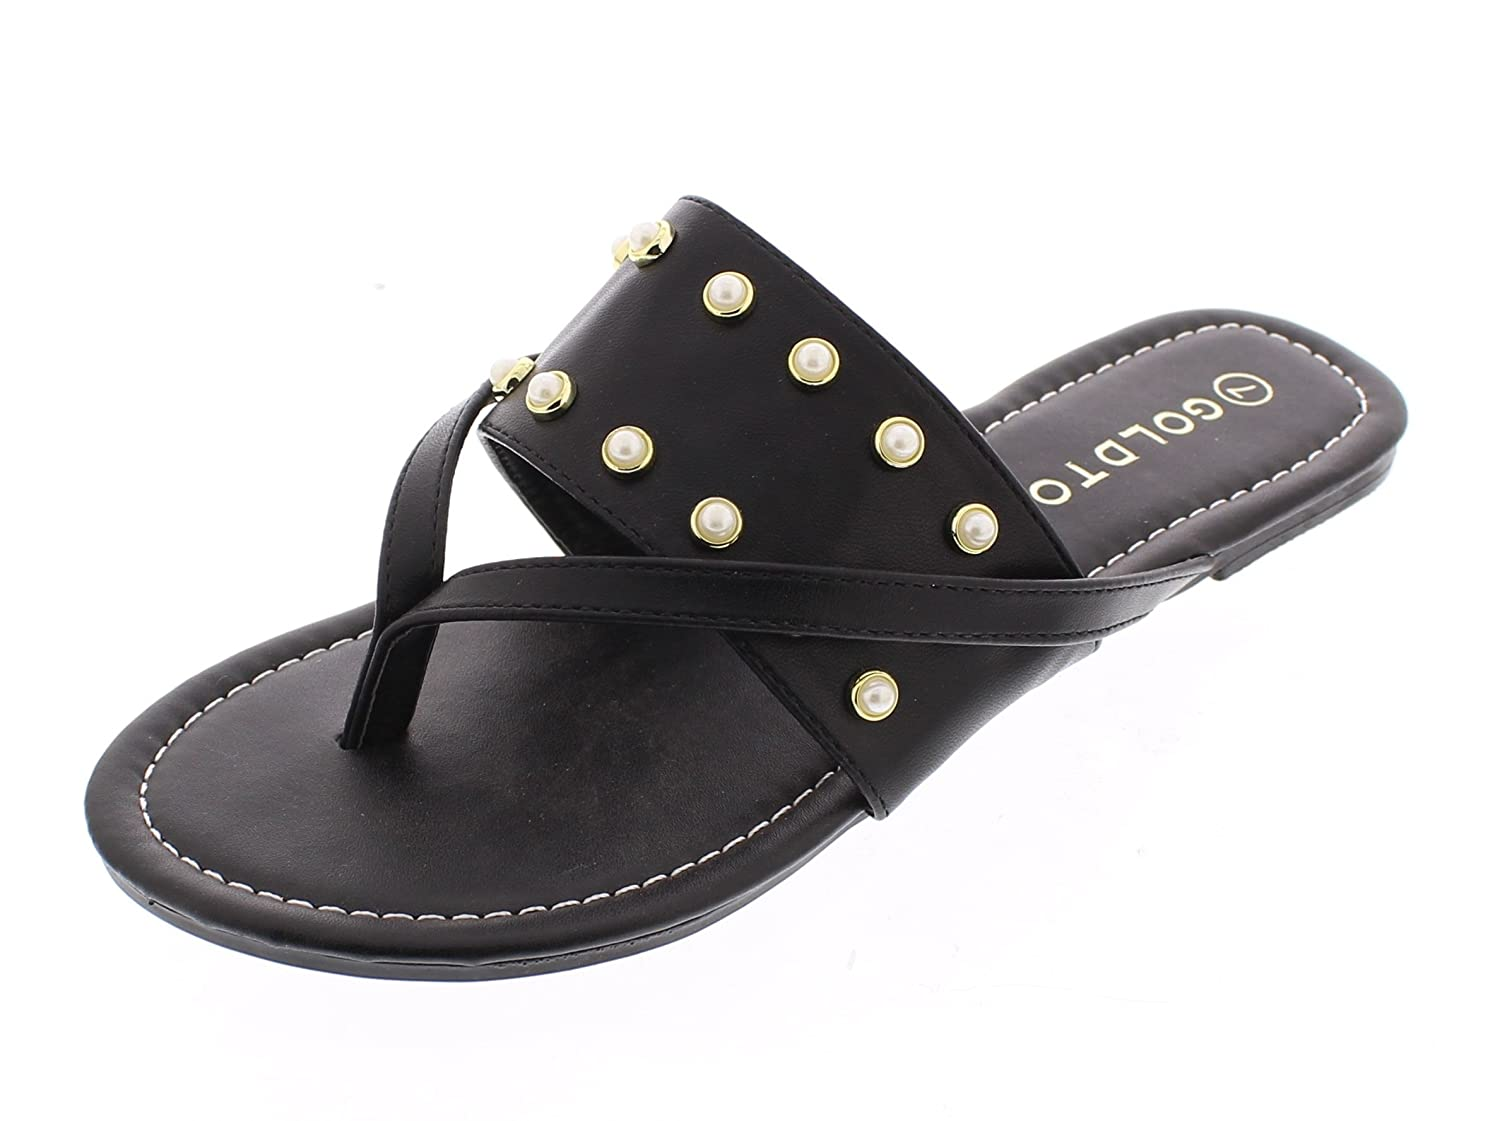 7660c91dfc706 Gold Toe Women s Ozella Double Strap Wide Band Slide On Flat Pearl Studs  Flip Flop Thong Sandal Shoes - Casual Women s Shoes